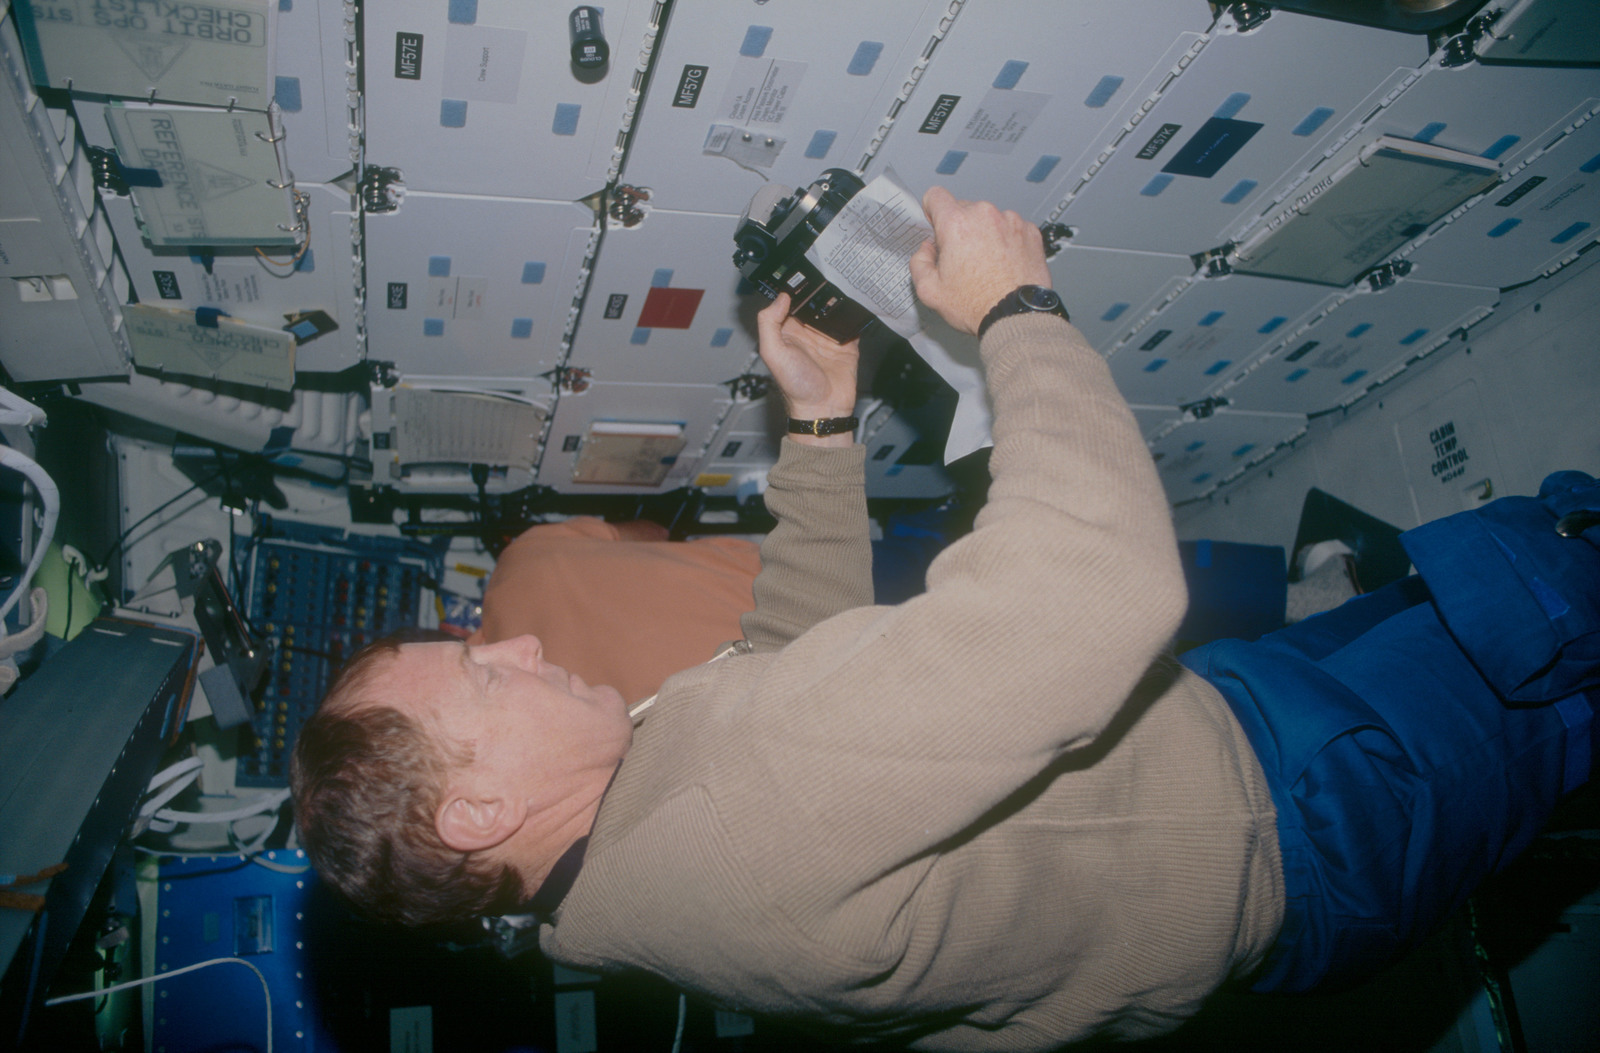 STS053-06-019 - STS-053 - Crewmember in the MDDK with a 35 mm camera and operating instructions